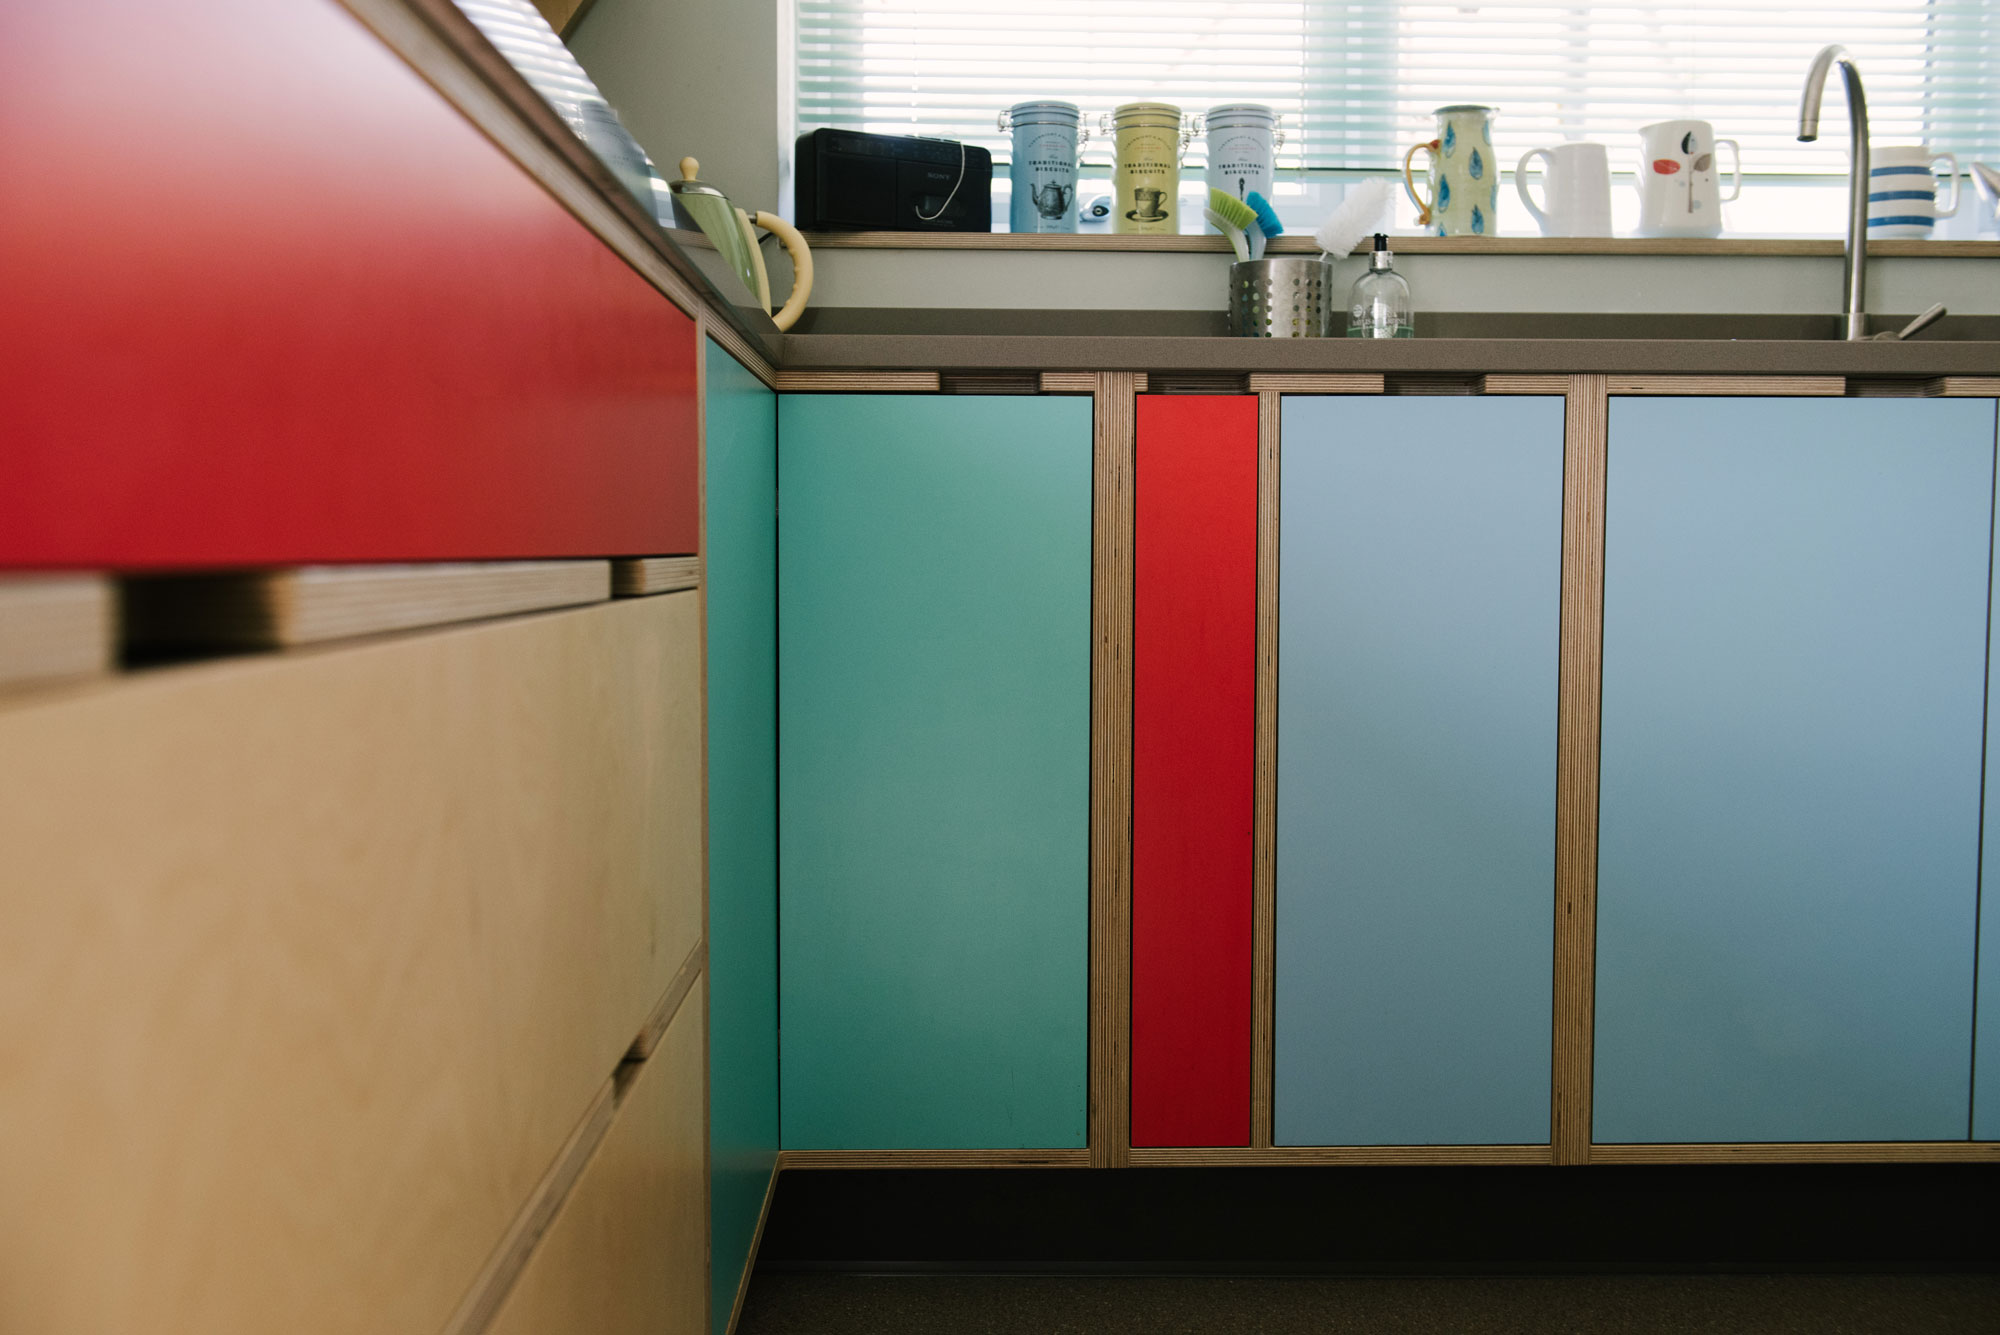 Retro Kitchen - Red and Blue Kitchen